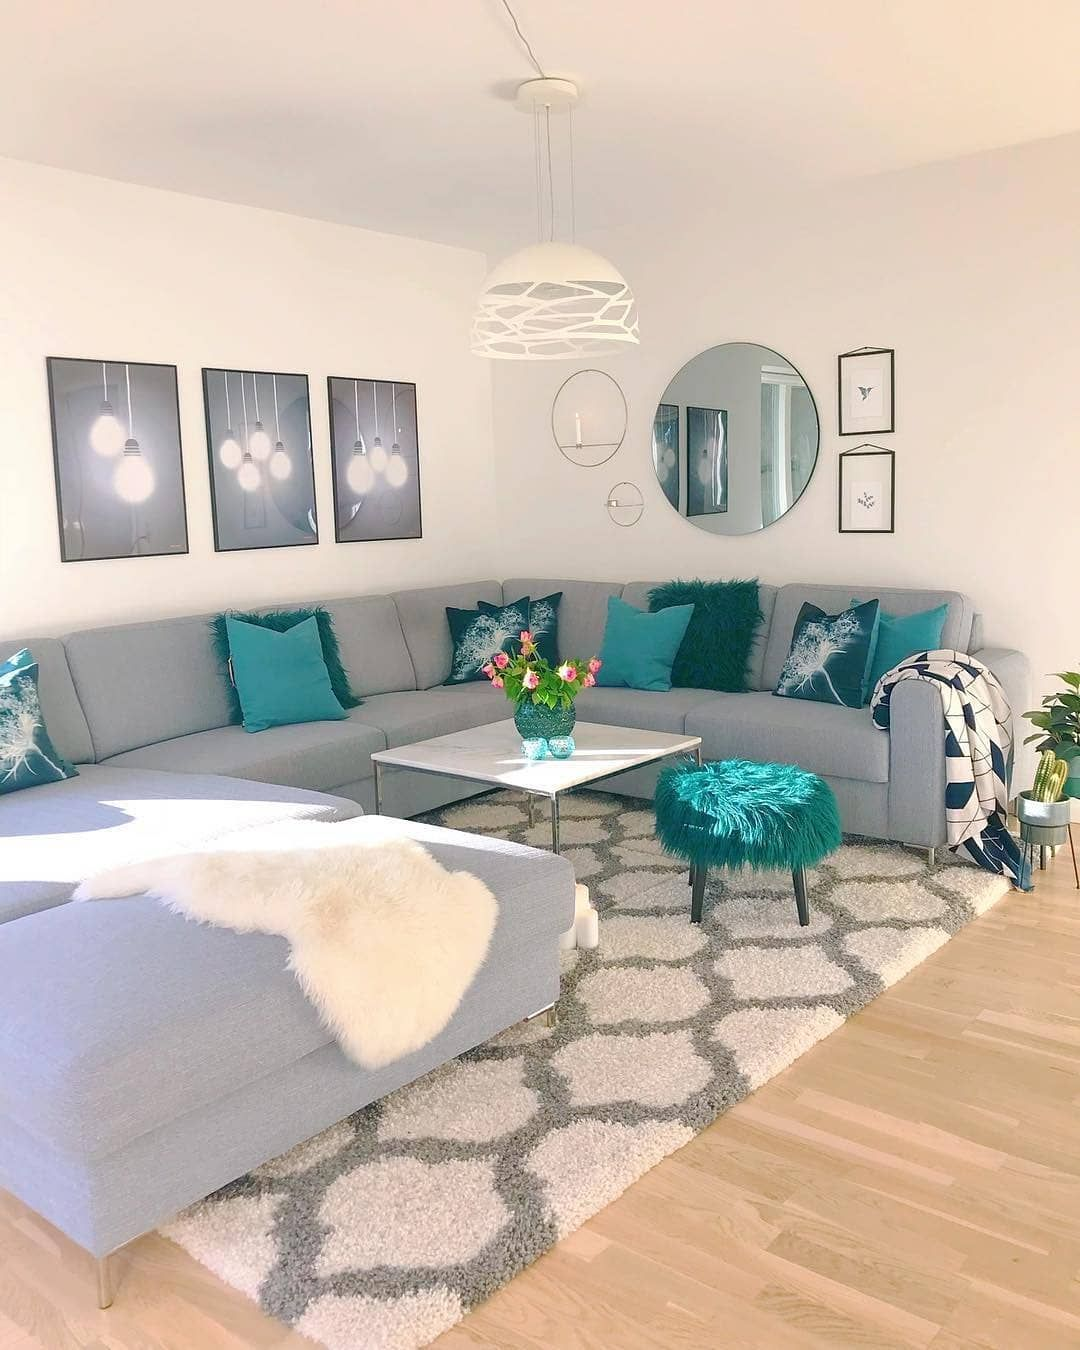 Dekor dekorasyon decor on instagram  chuzurlu geceler sizce nas  birbirinden guzel fikirleri icin beni takip etmeyi unutmay  also pin by jennifer burke add some color in living room rh pinterest